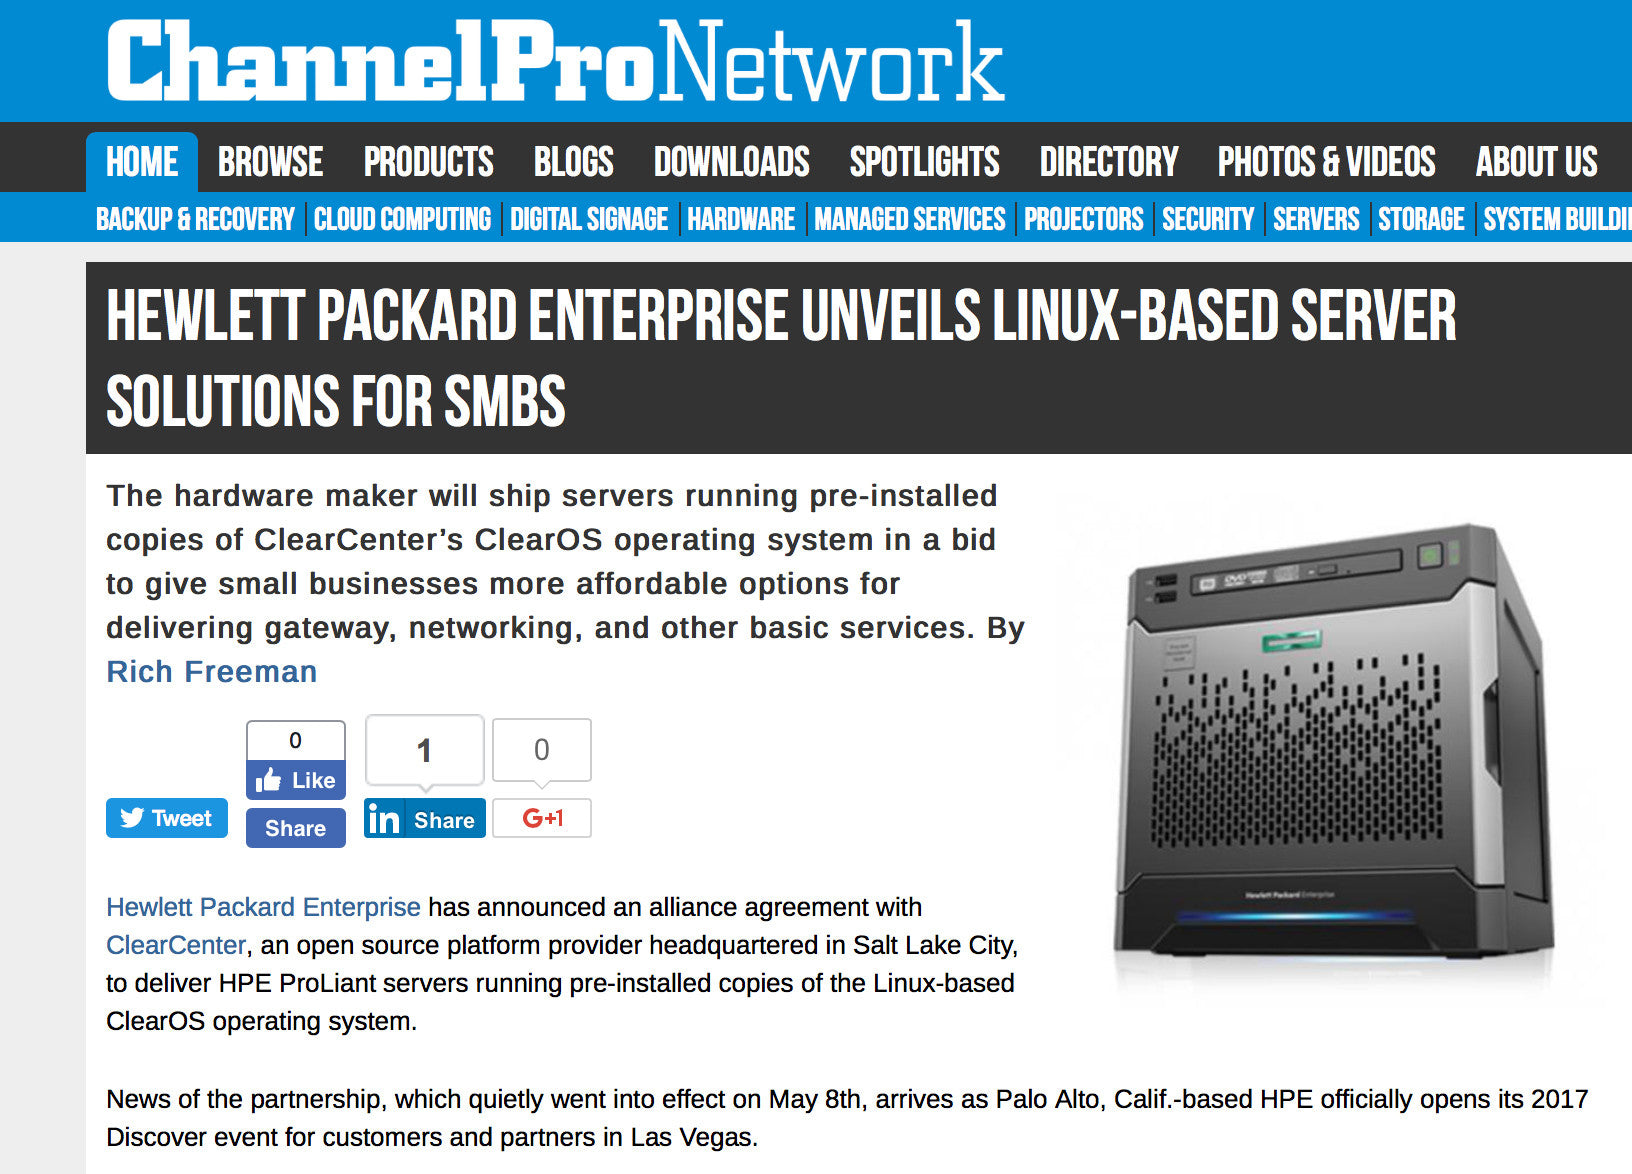 Hewlett Packard Enterprise Unveils Linux-based Server Solutions for SMBs